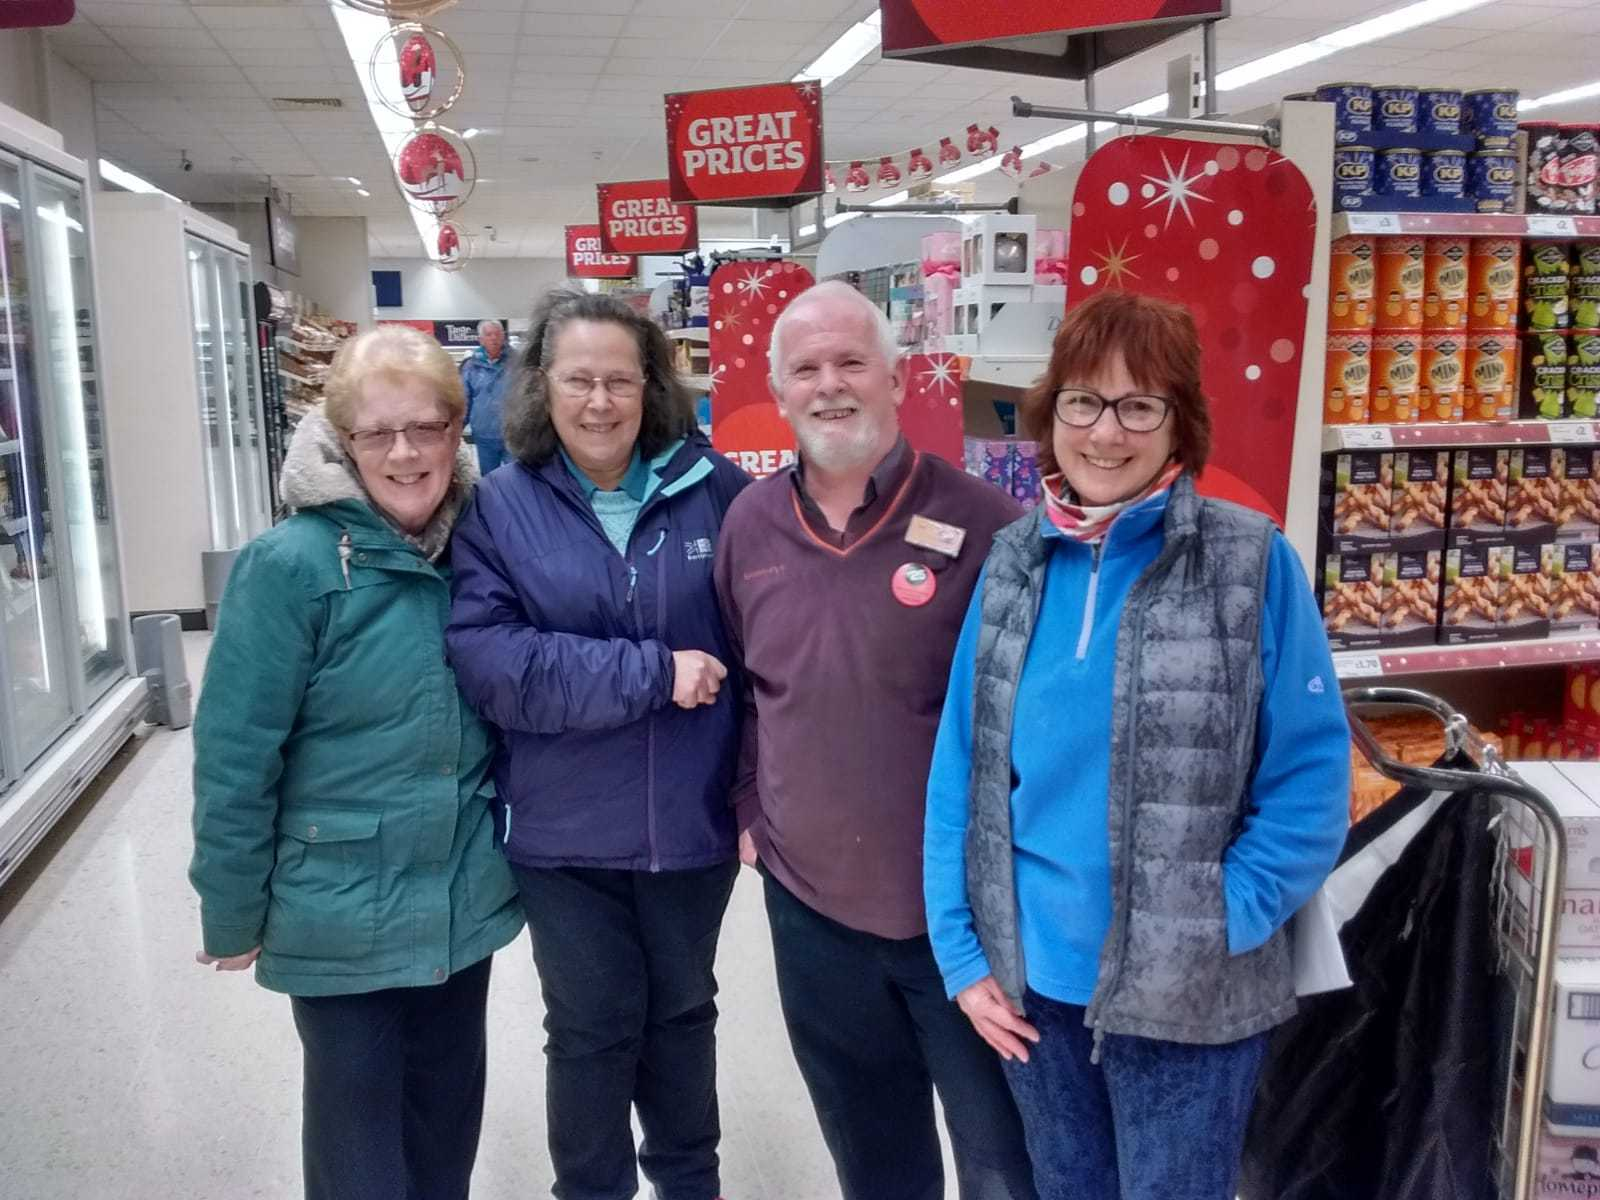 Alison Pearson, Mandy Clydesdale, Les Bowers and Jennifer Swan.